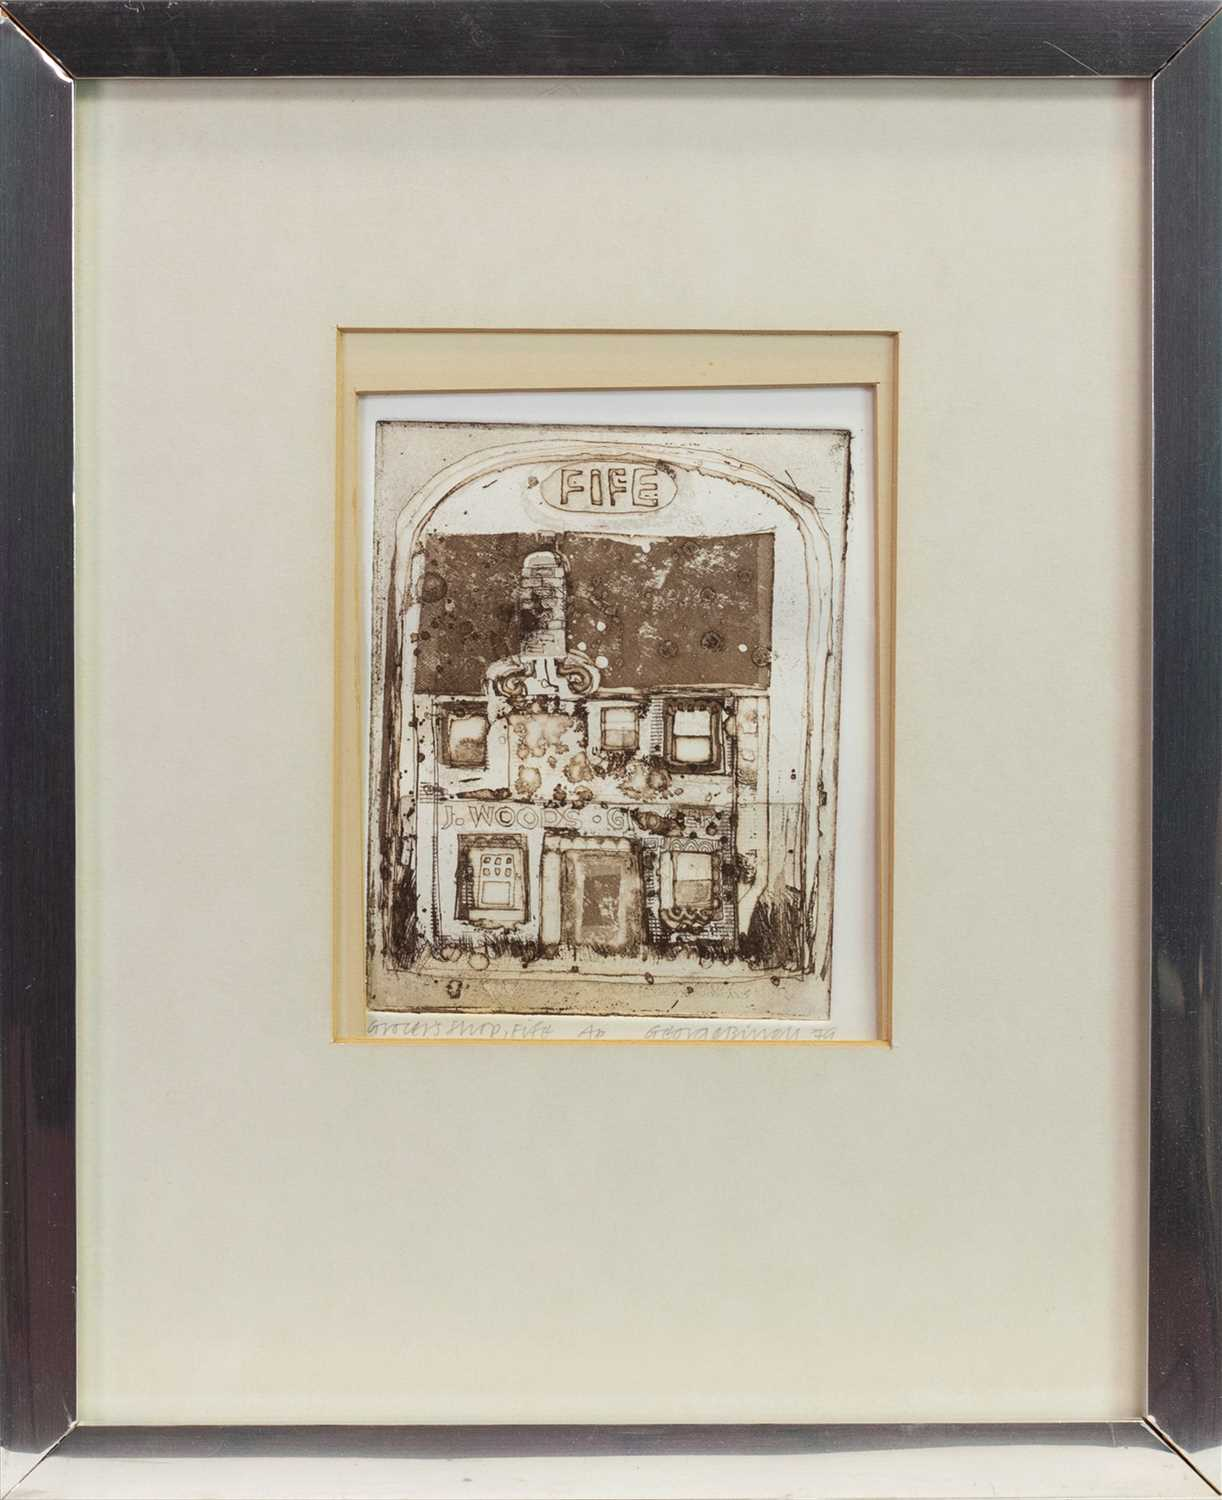 Lot 408-GROCER'S SHOP, FIFE, AN ETCHING BY GEORGE BIRRELL